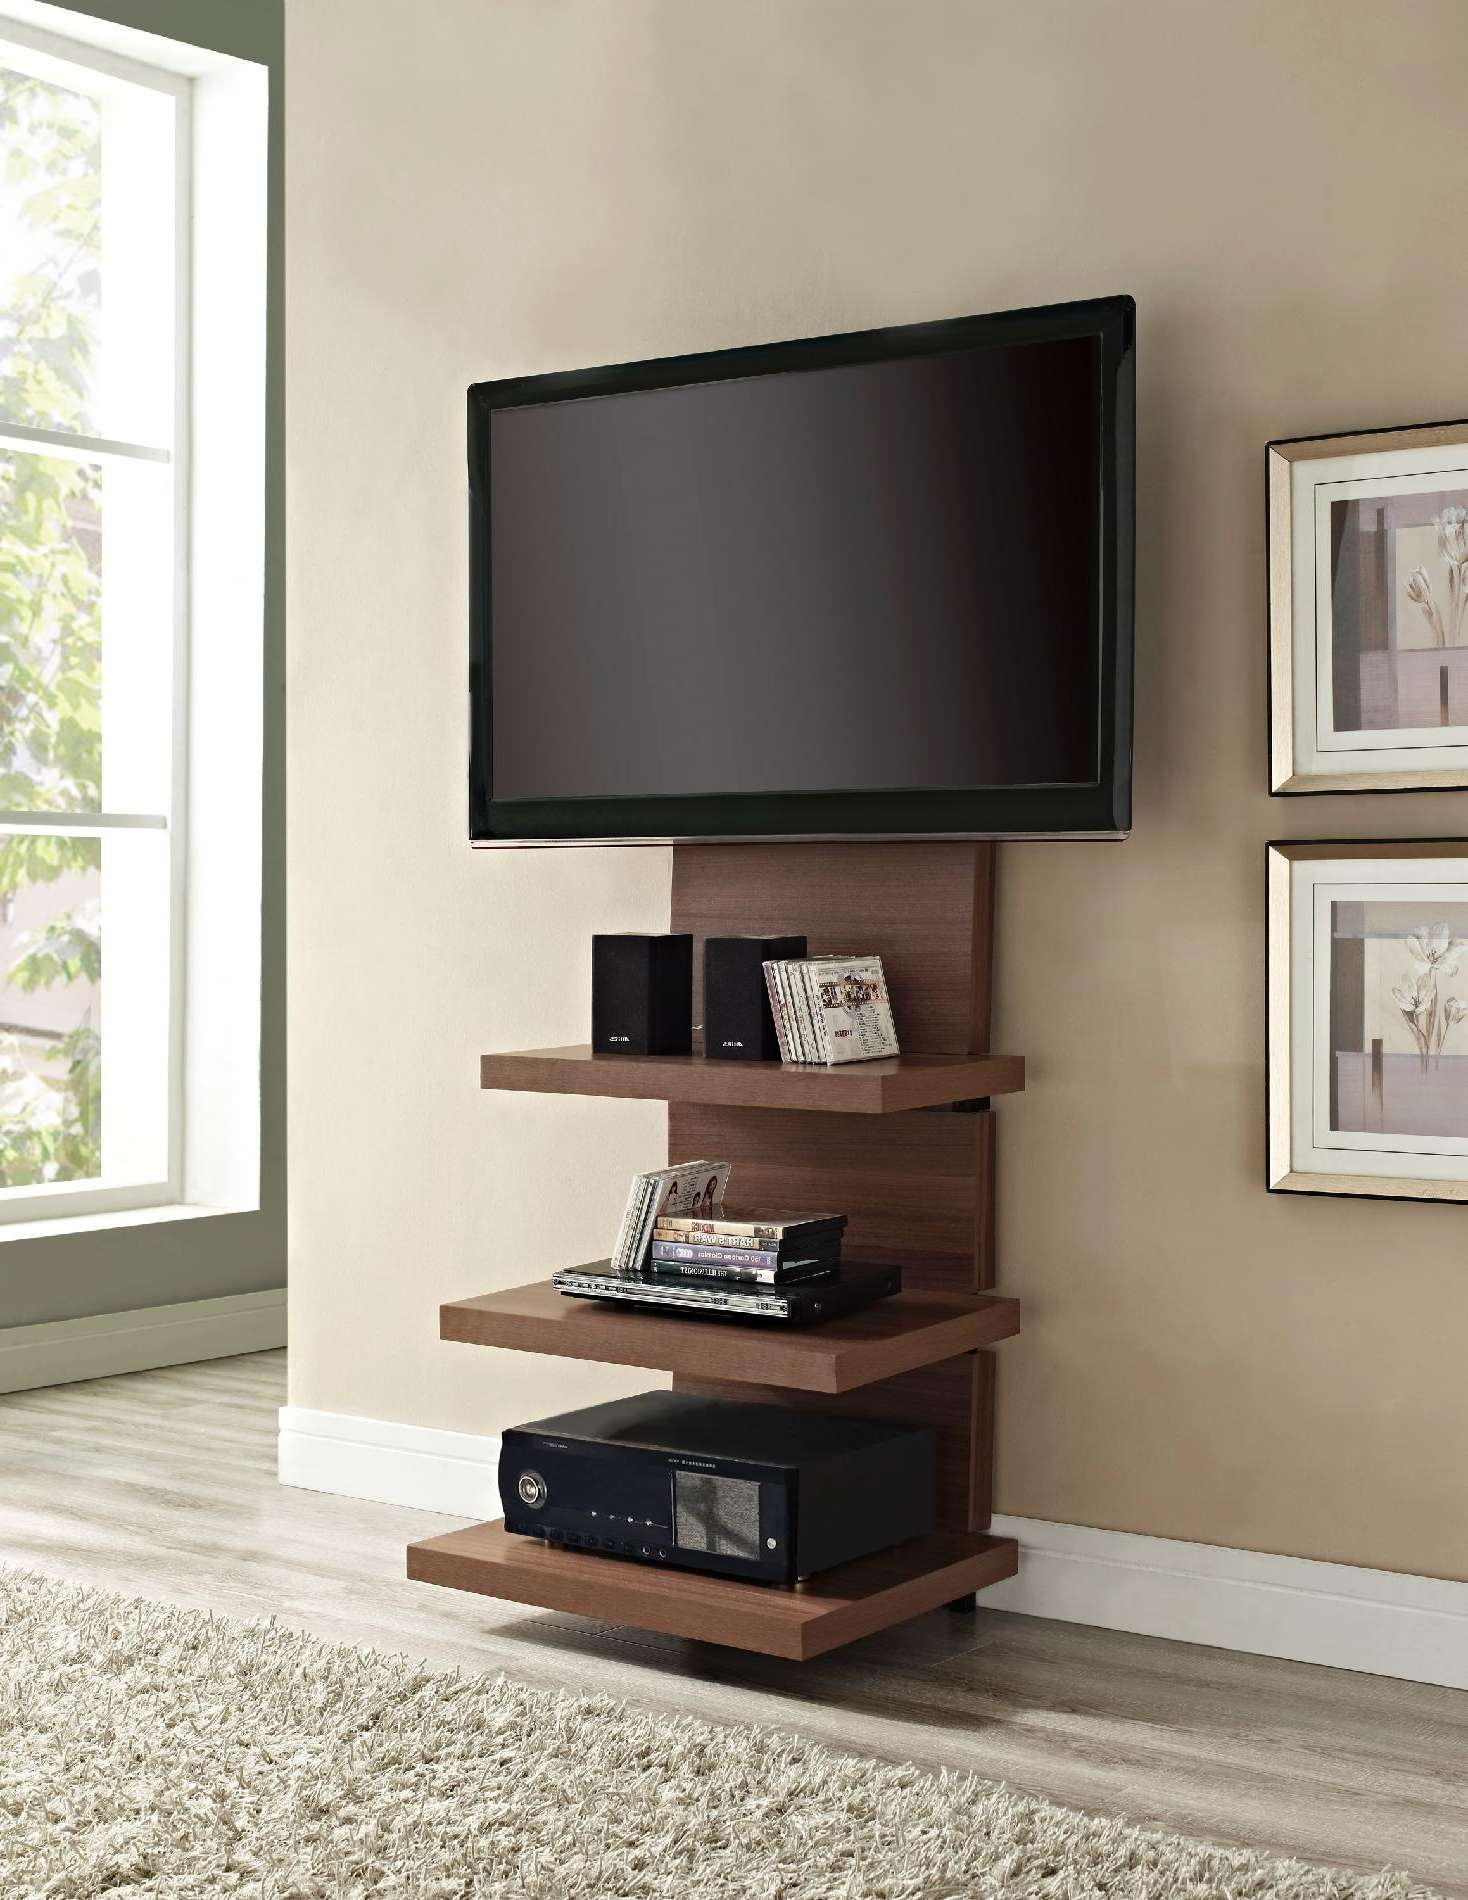 Great Tall Skinny Tv Stand 37 In Home Remodel Ideas With Tall Inside Tall Skinny Tv Stands (View 3 of 15)